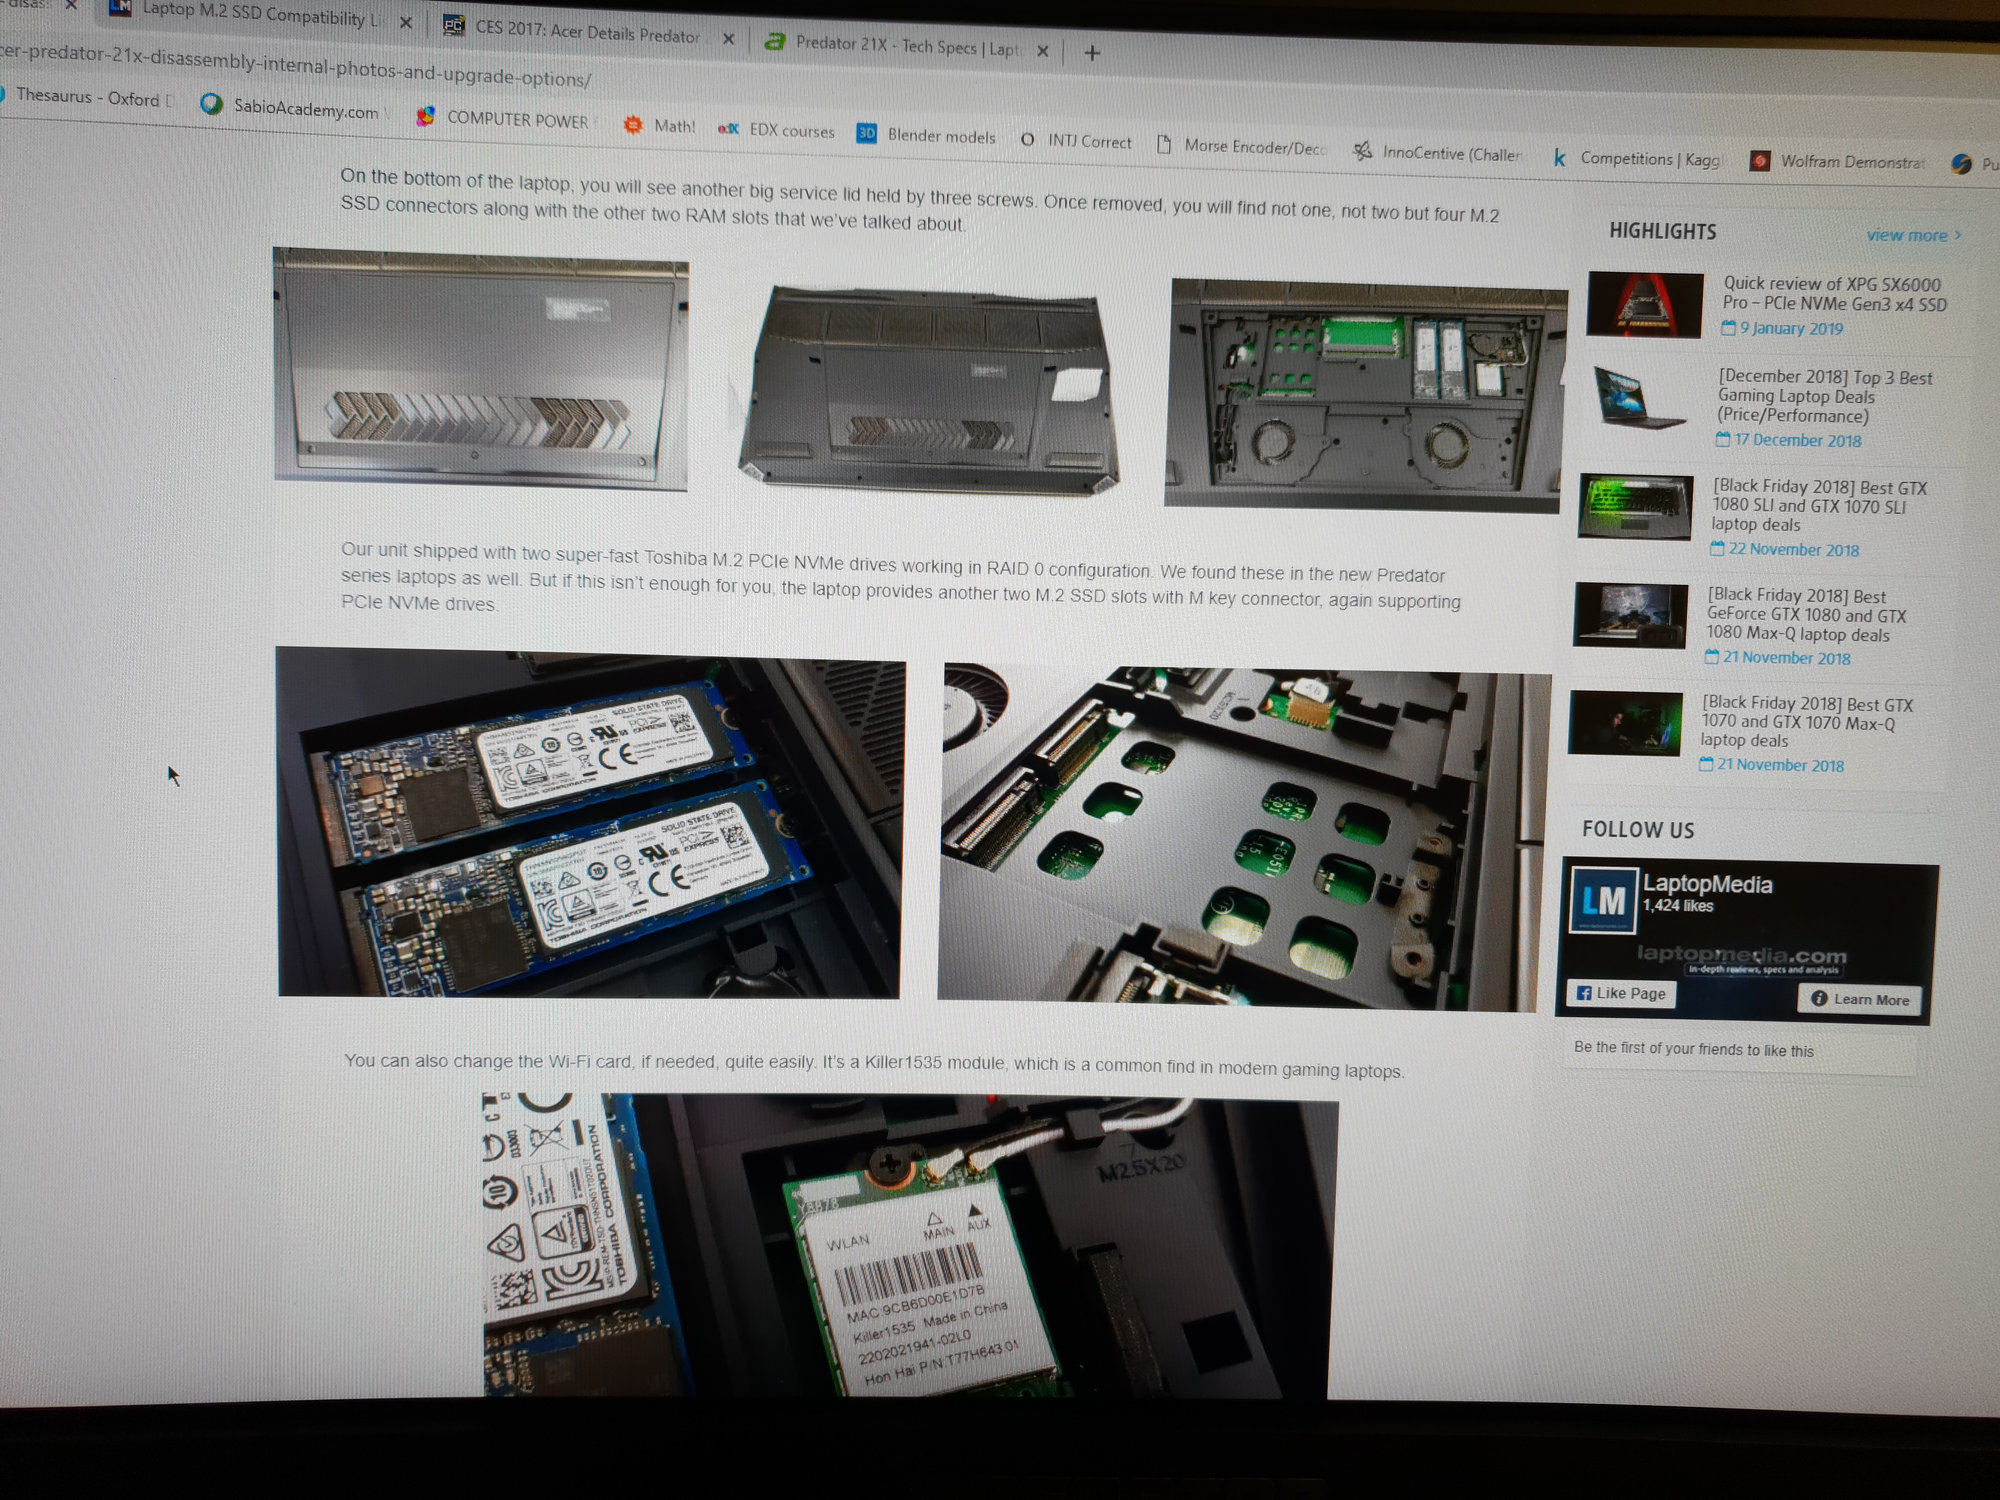 Acer Predator 21x - Installing M 2 NVMe SSD - Does not